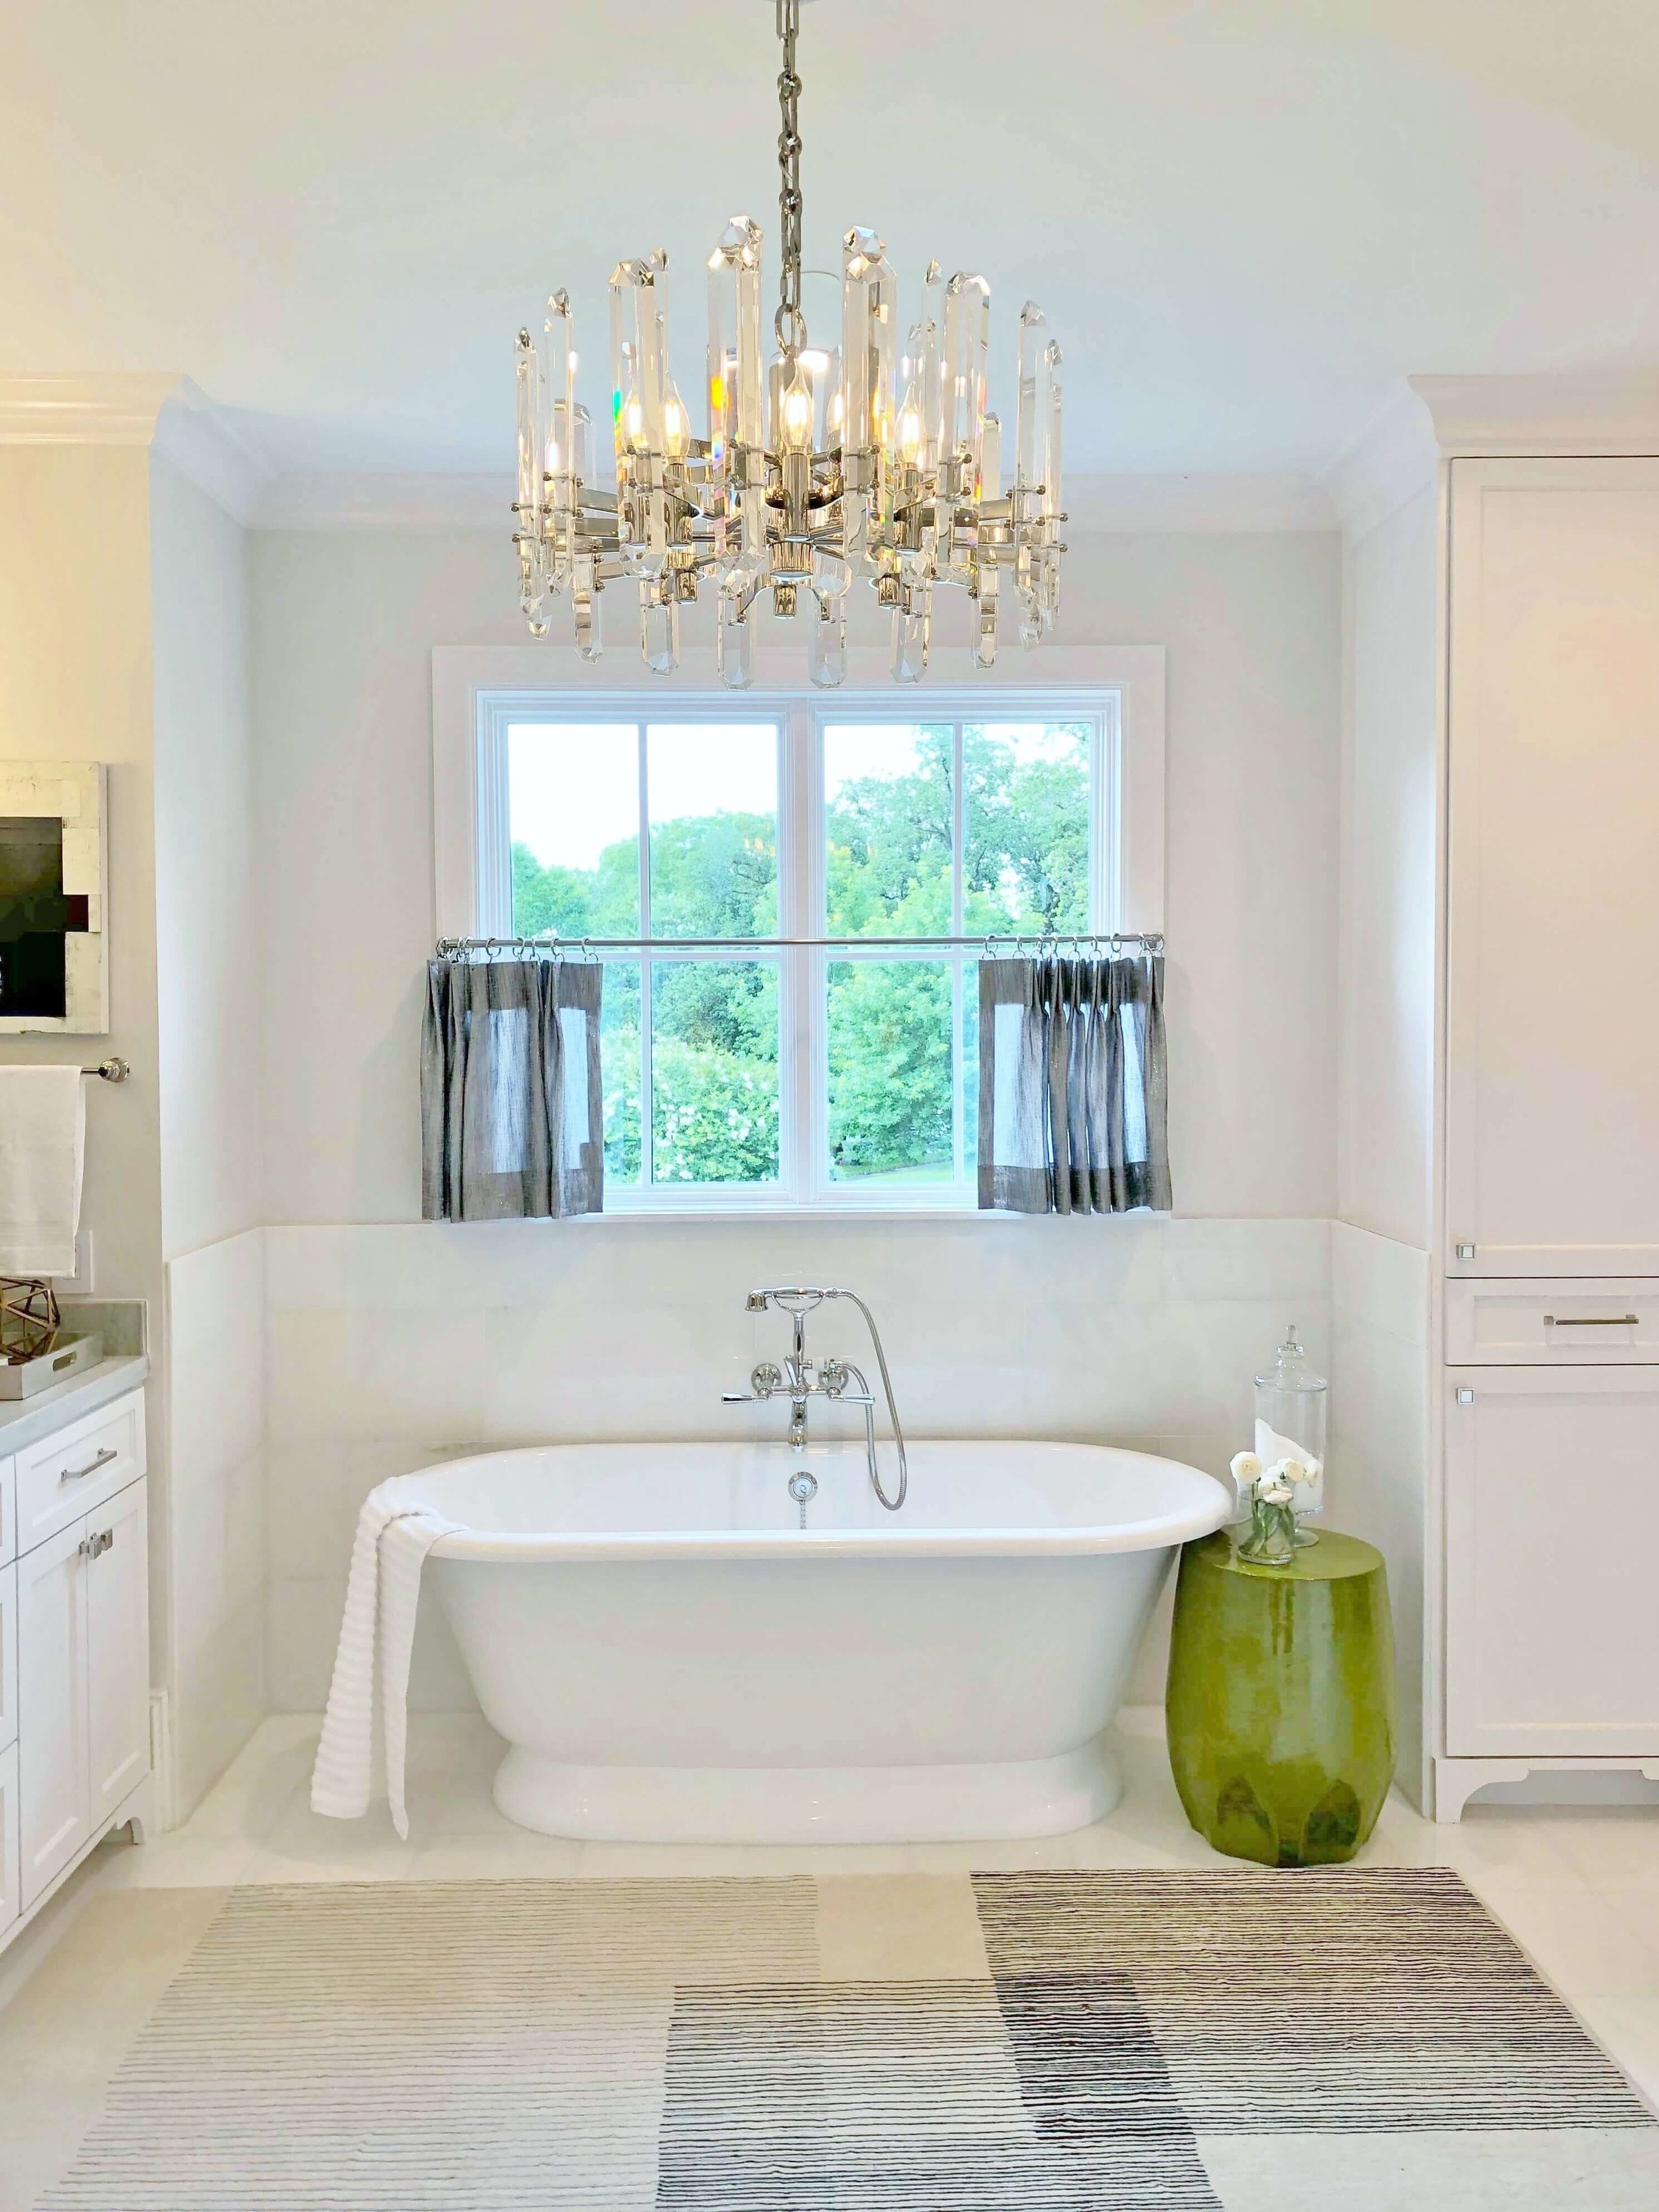 This beautiful master bath with a free-standing tub, pretty cafe curtain and glam light fixture, designed by Brooke Bowman of Bowman Design Studio, fits the luxurious feel of this home in River Oaks, Houston. ASID River Oaks Showhouse #masterbath #bathdesign #freestandingtub